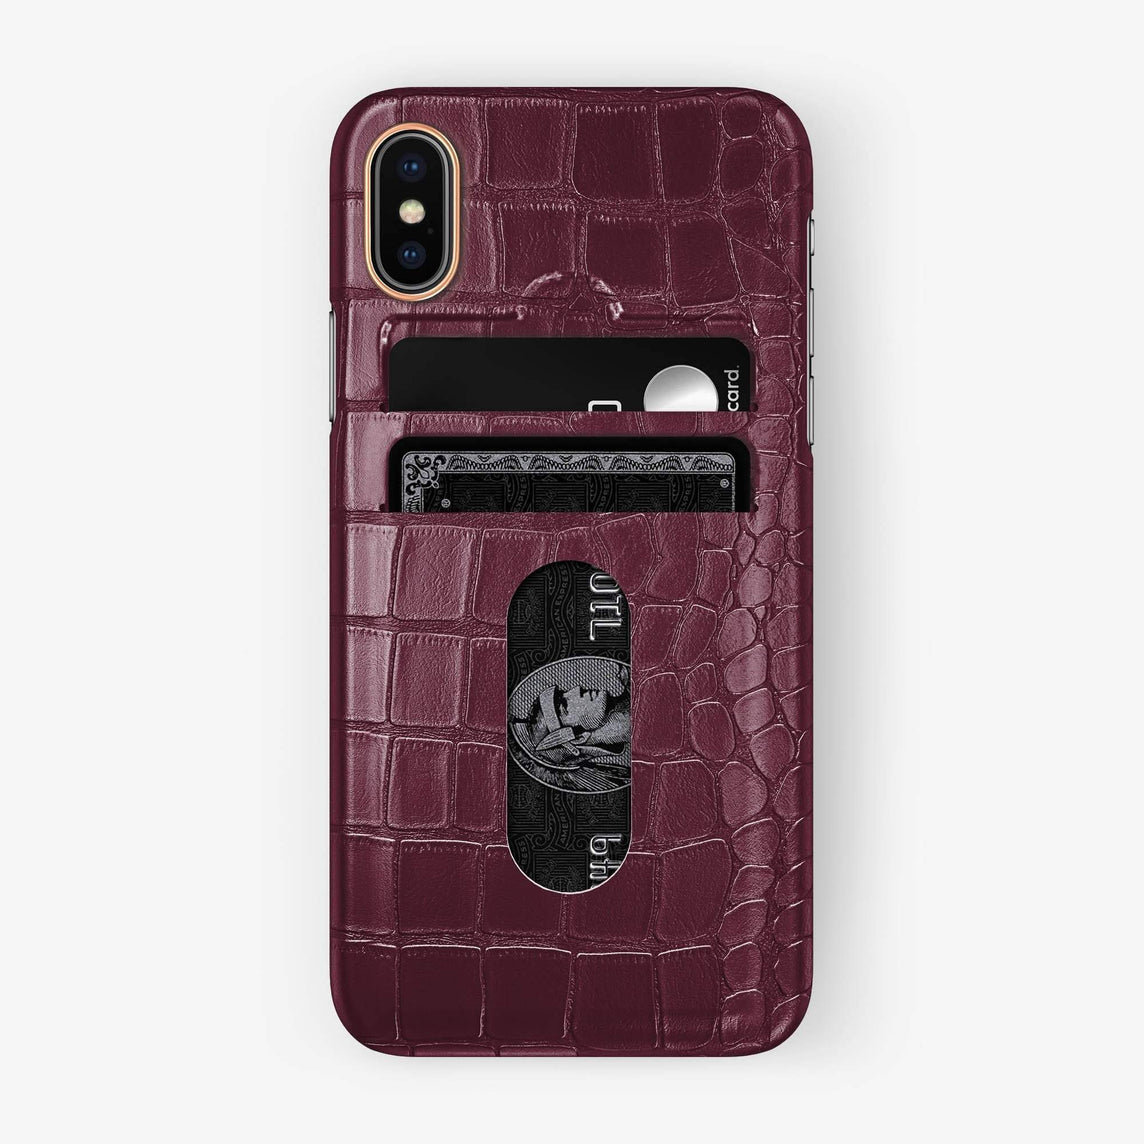 Alligator Card Holder Case iPhone Xs Max | Burgundy - Rose Gold - Hadoro